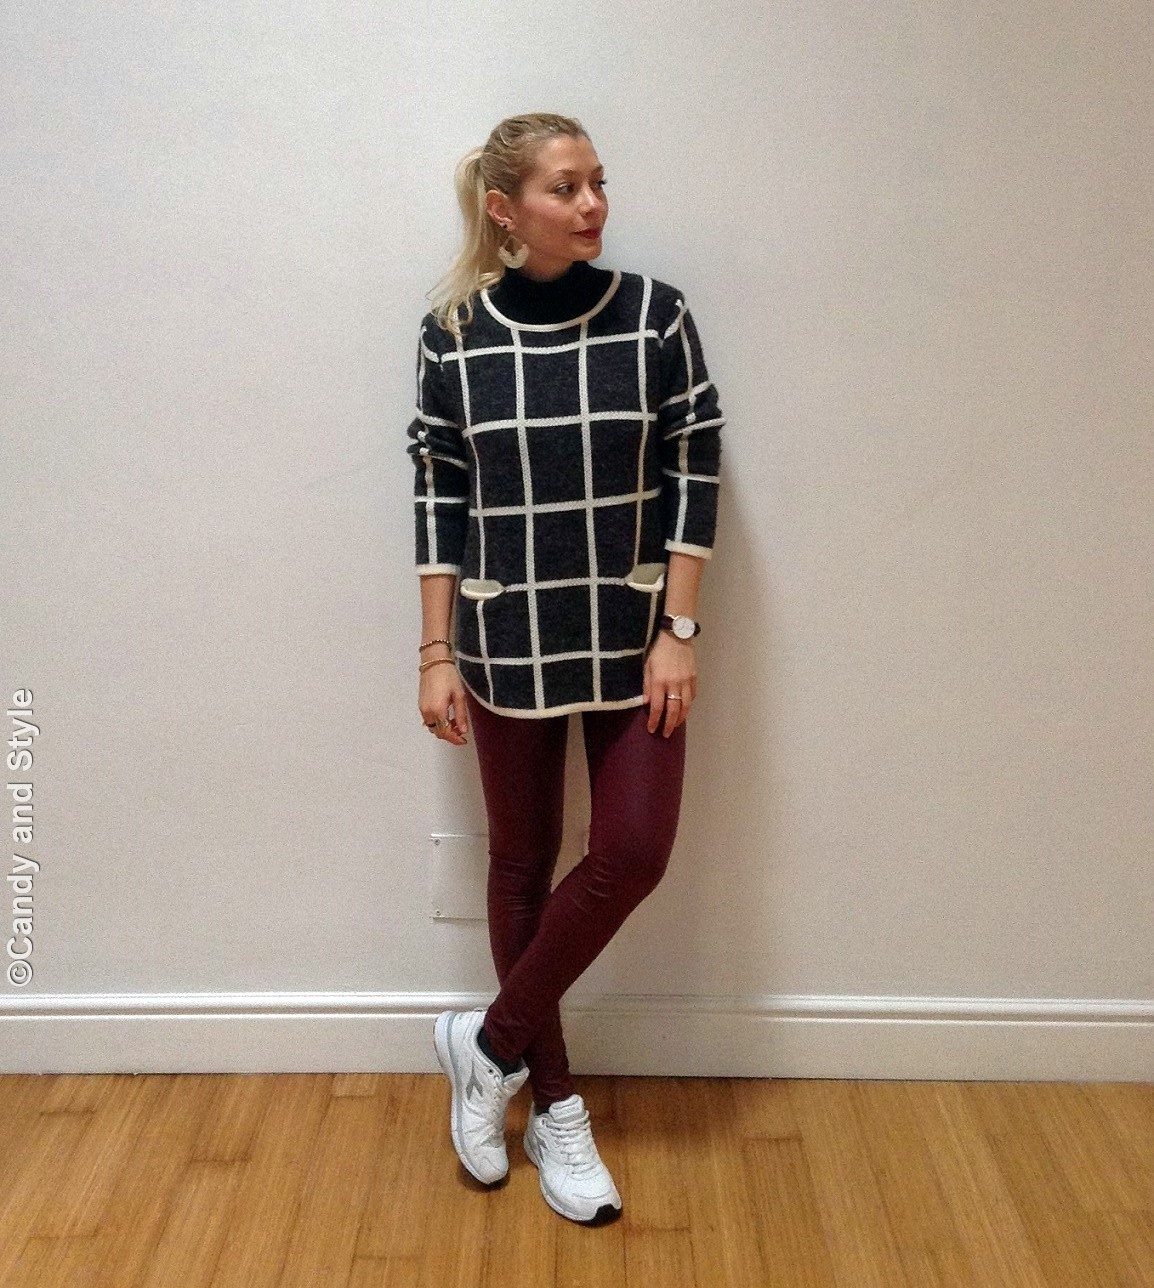 Checks - Leggings - Sneakers